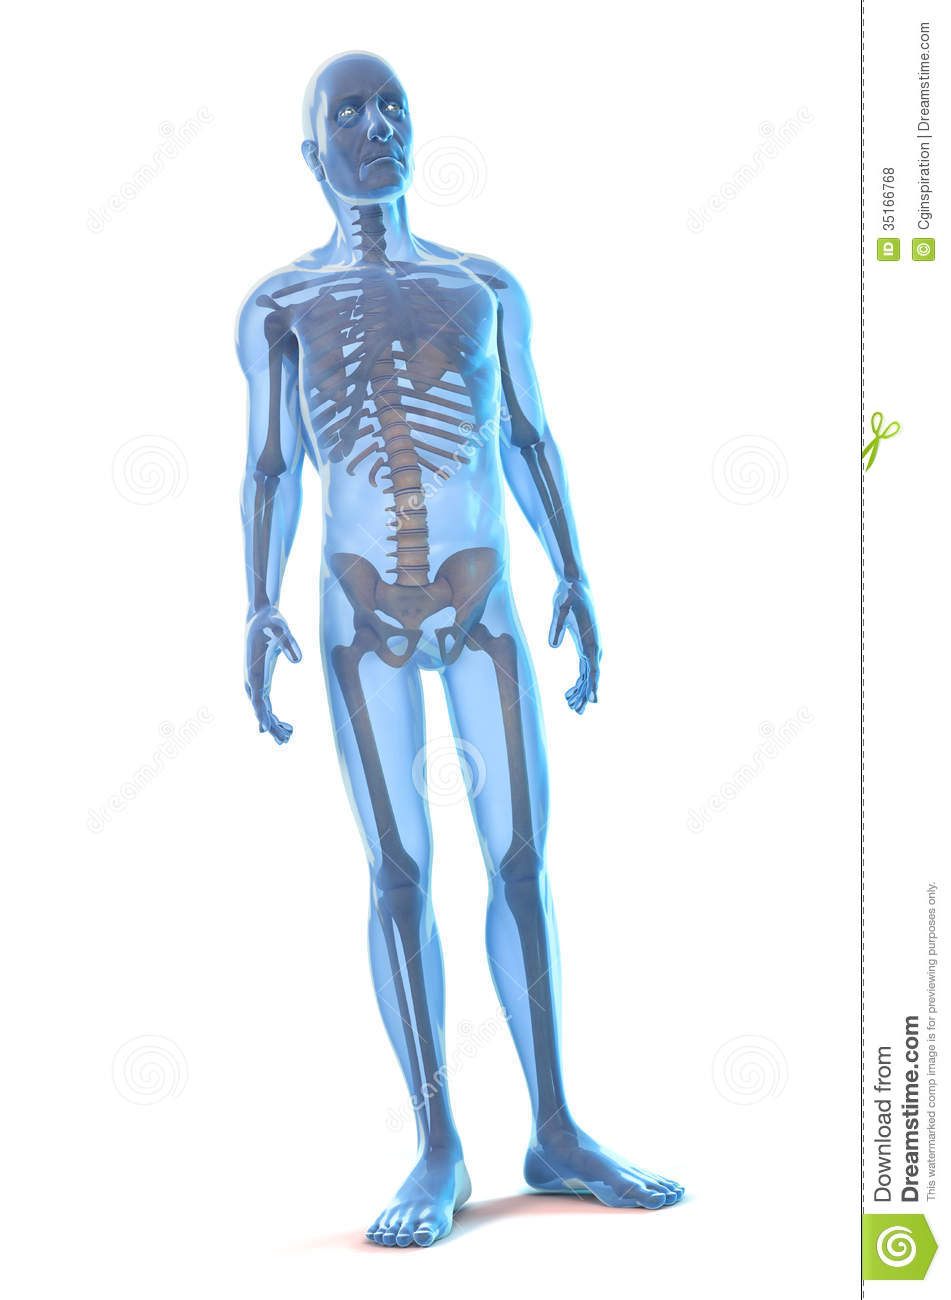 Human Body stock photo. Image of blue, standing, muscular ...